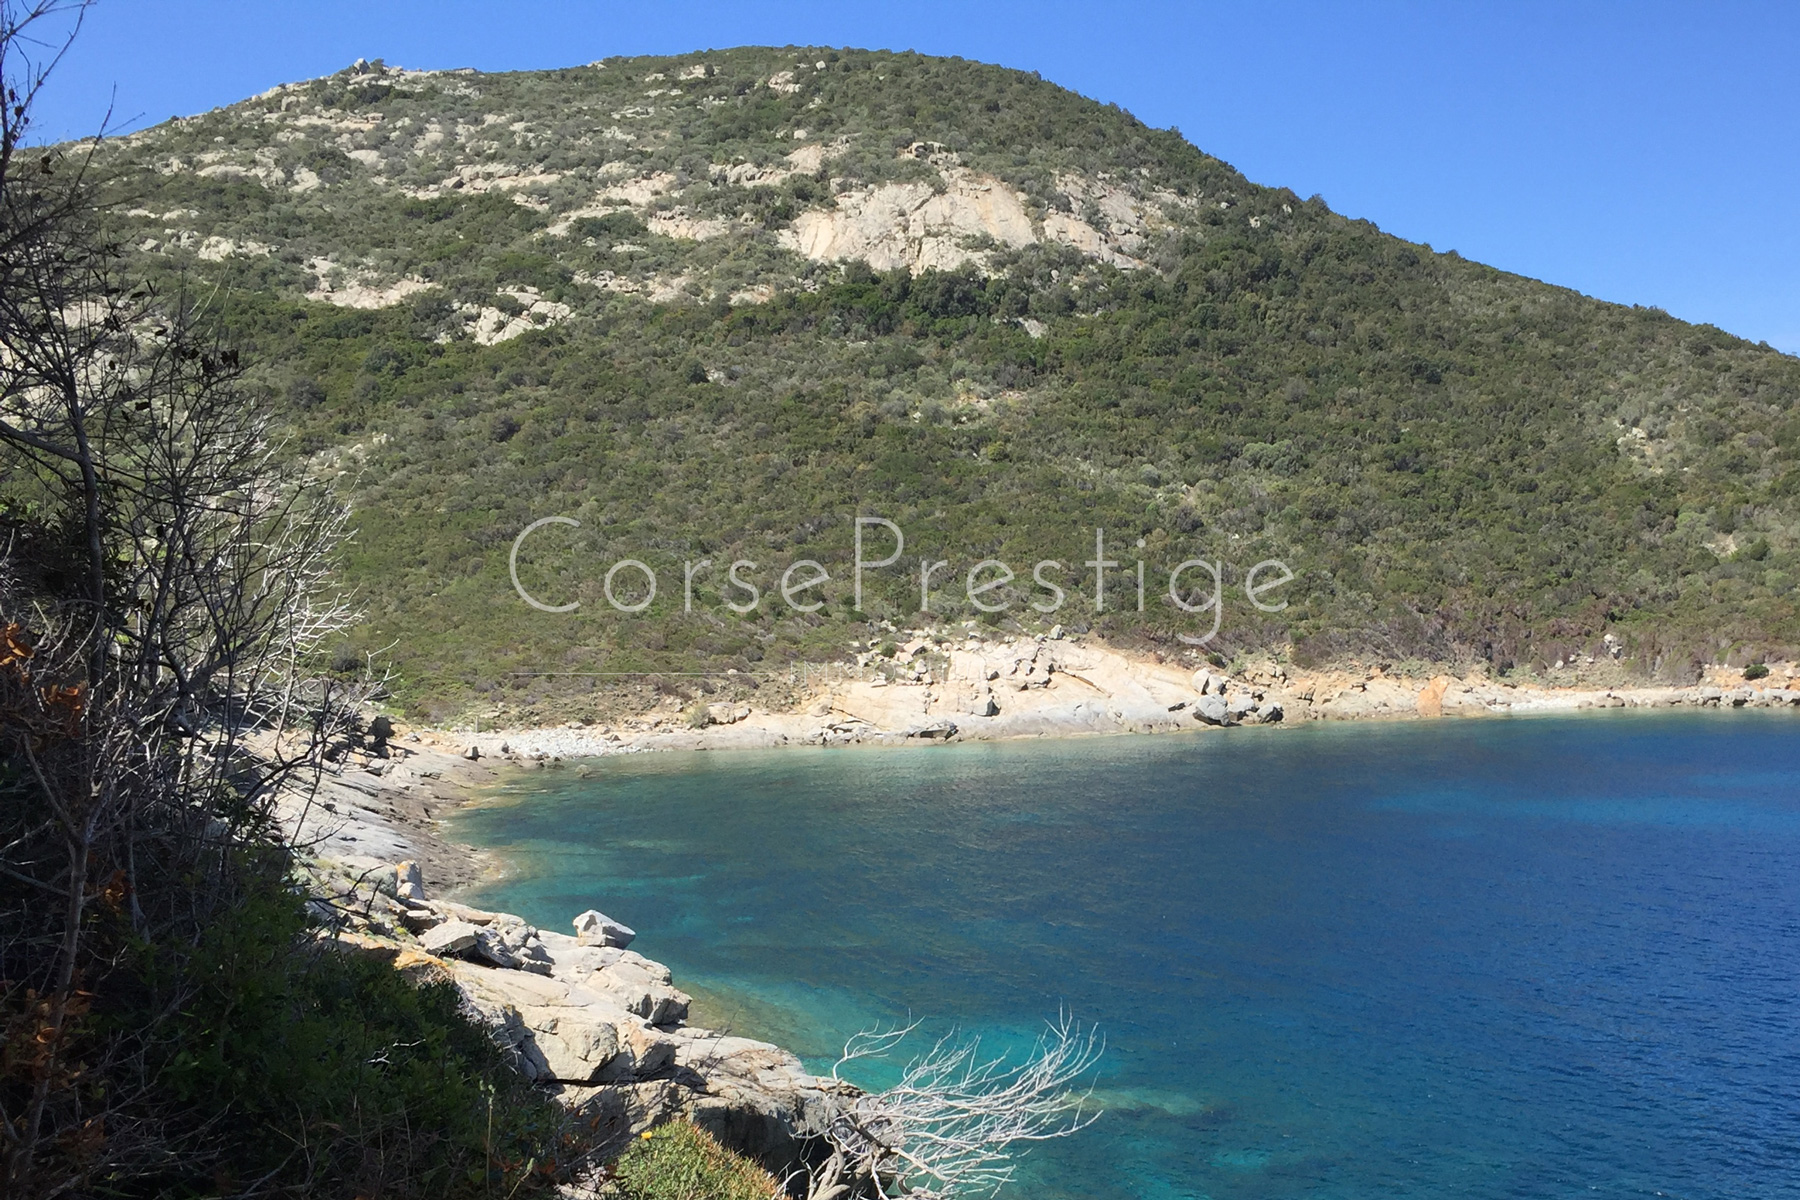 Seafront property in Corsica